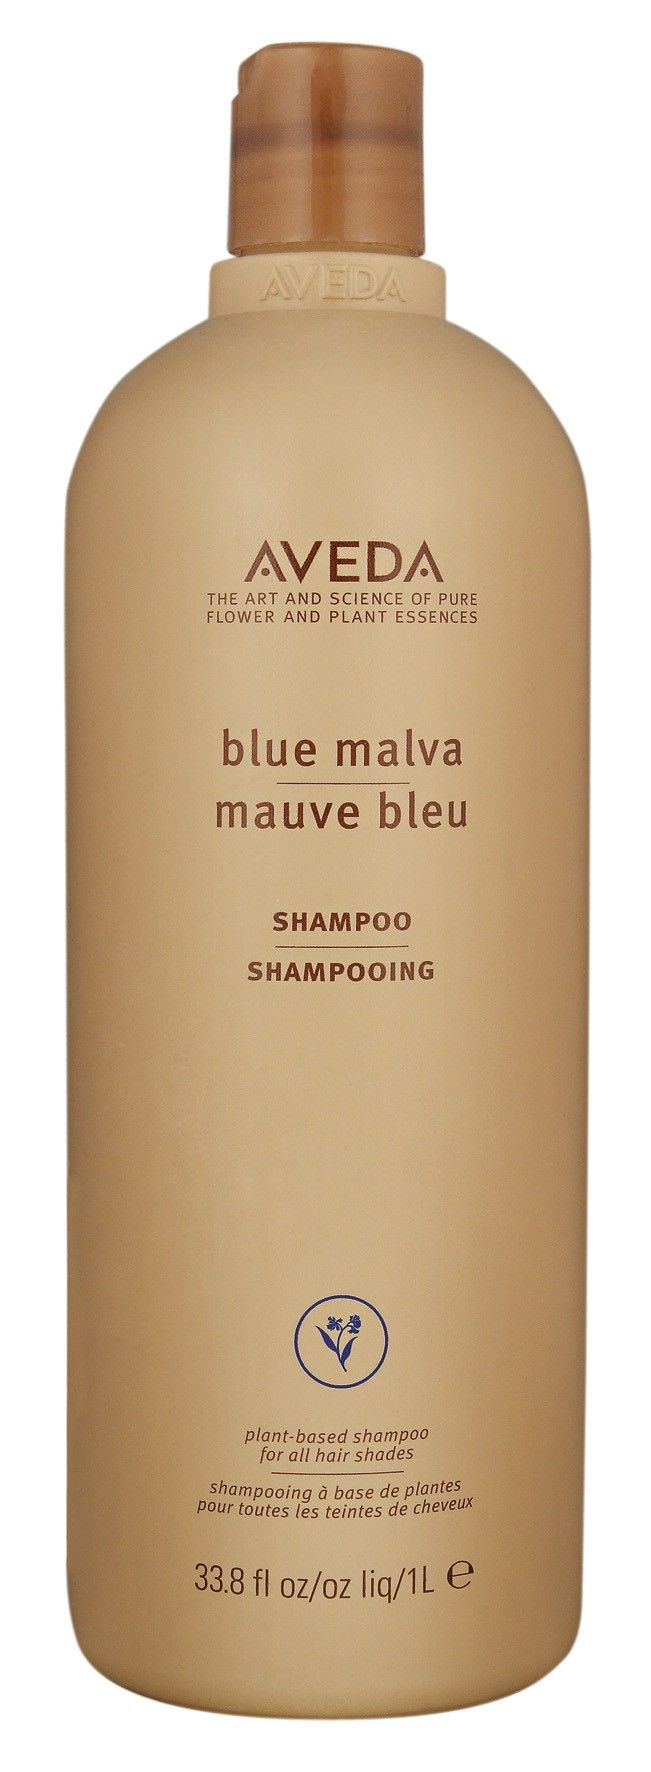 My Absolute Favorite Shampoo For My Naturally Silver White